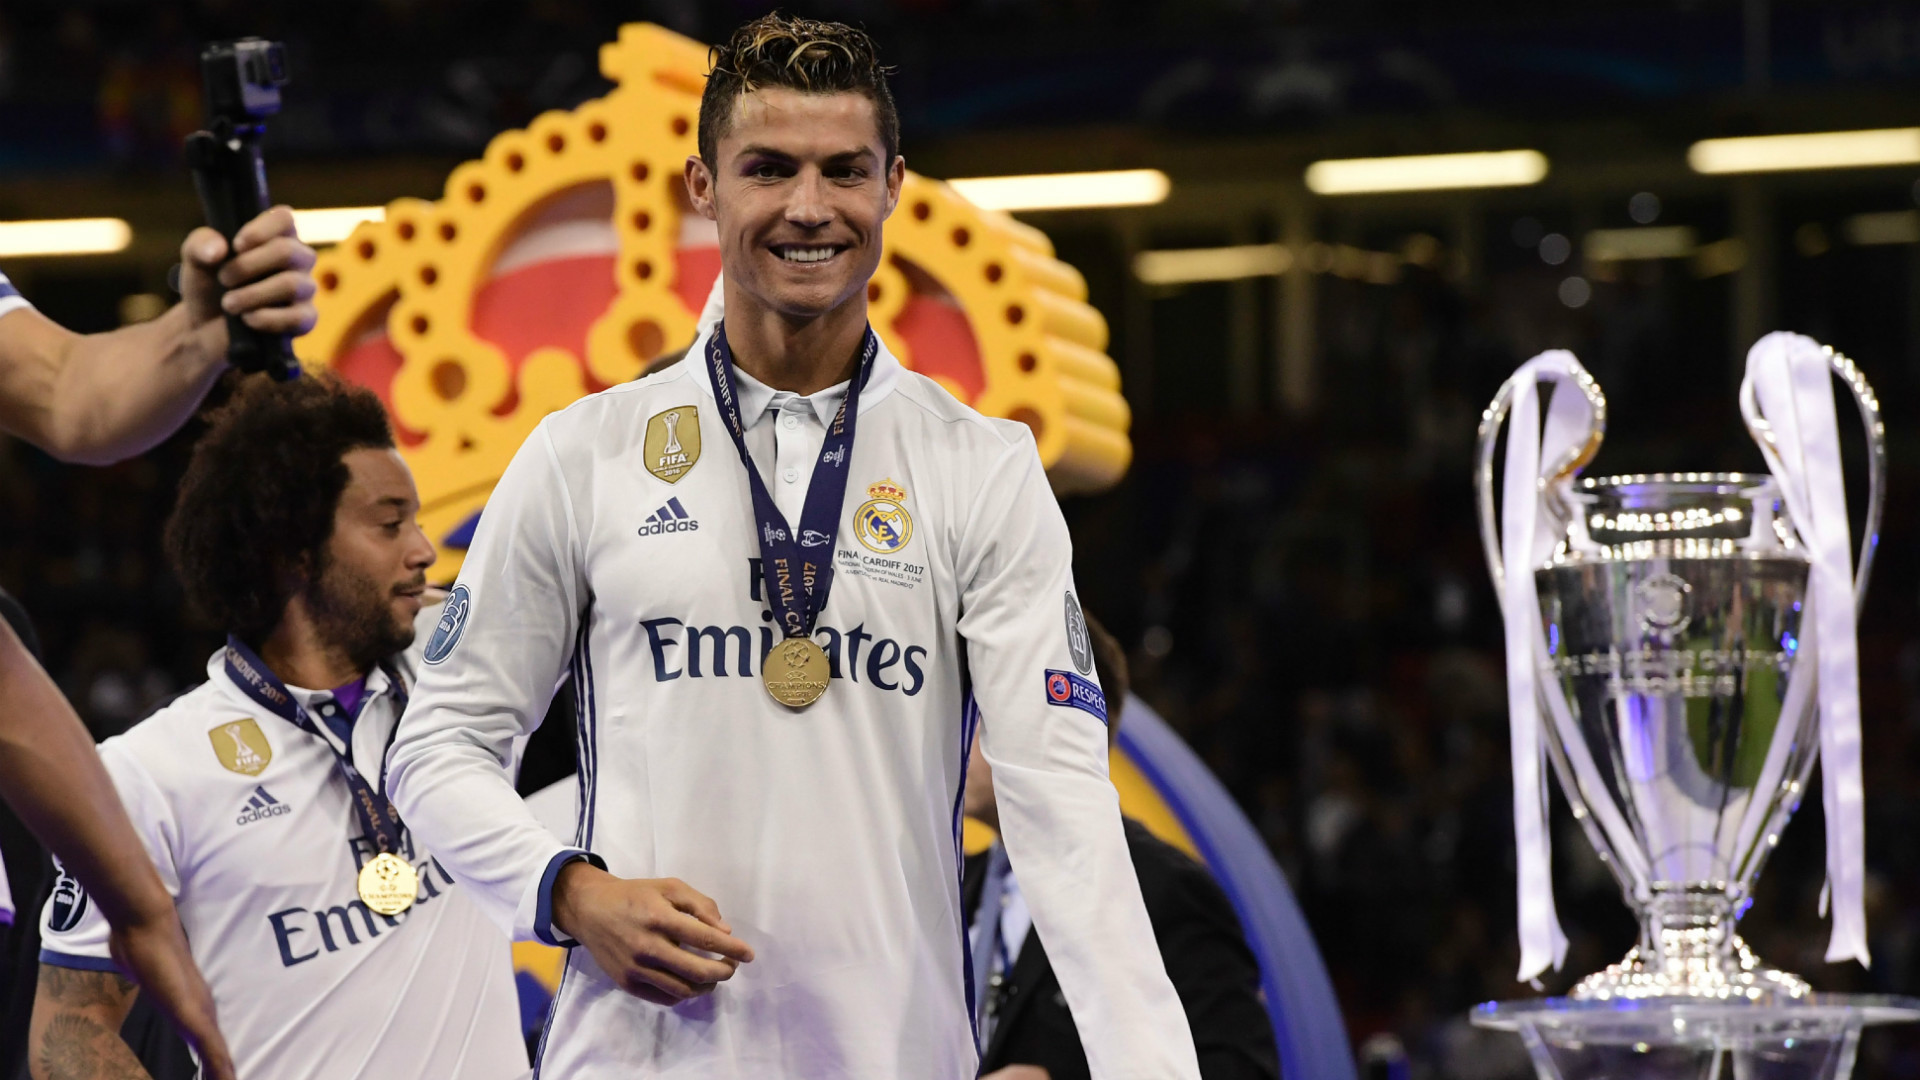 1920x1080 Cristiano Ronaldo Real Madrid Champions League